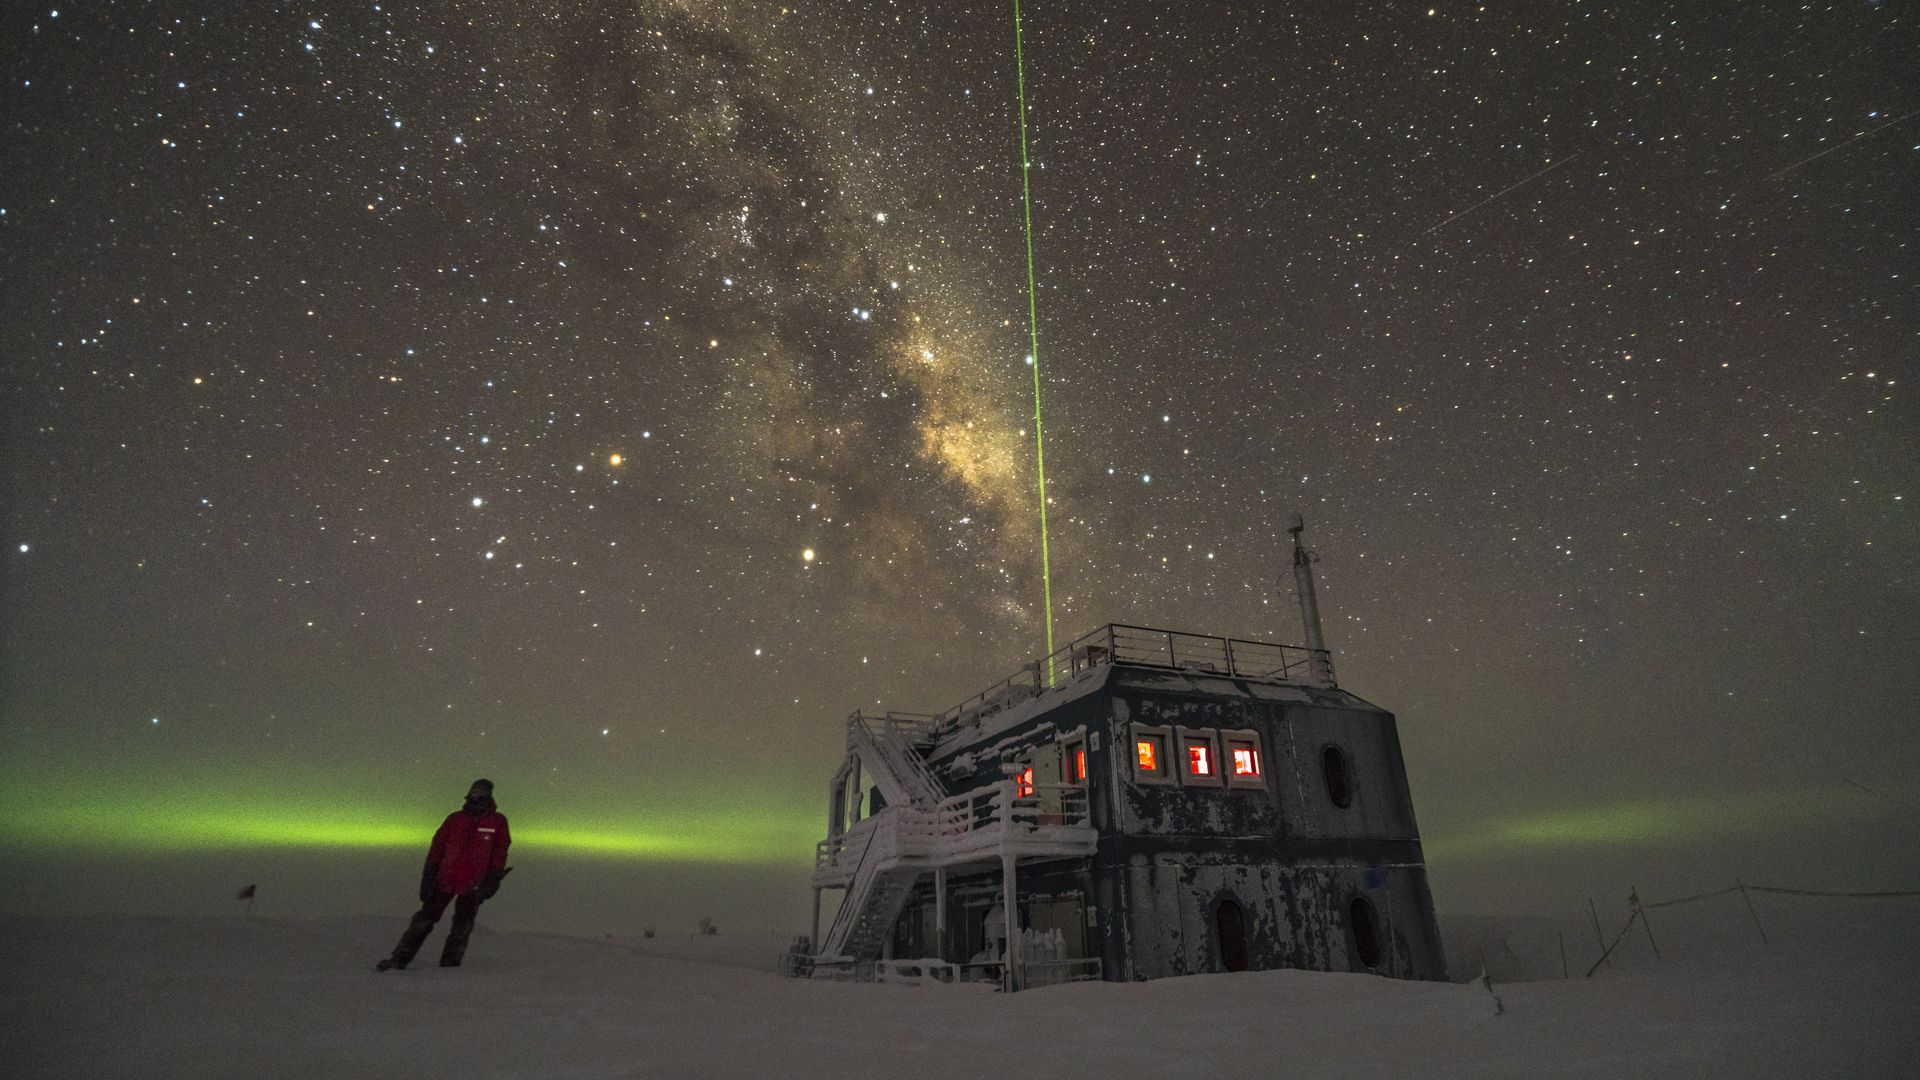 IceCube lab in Antarctica under the stars.